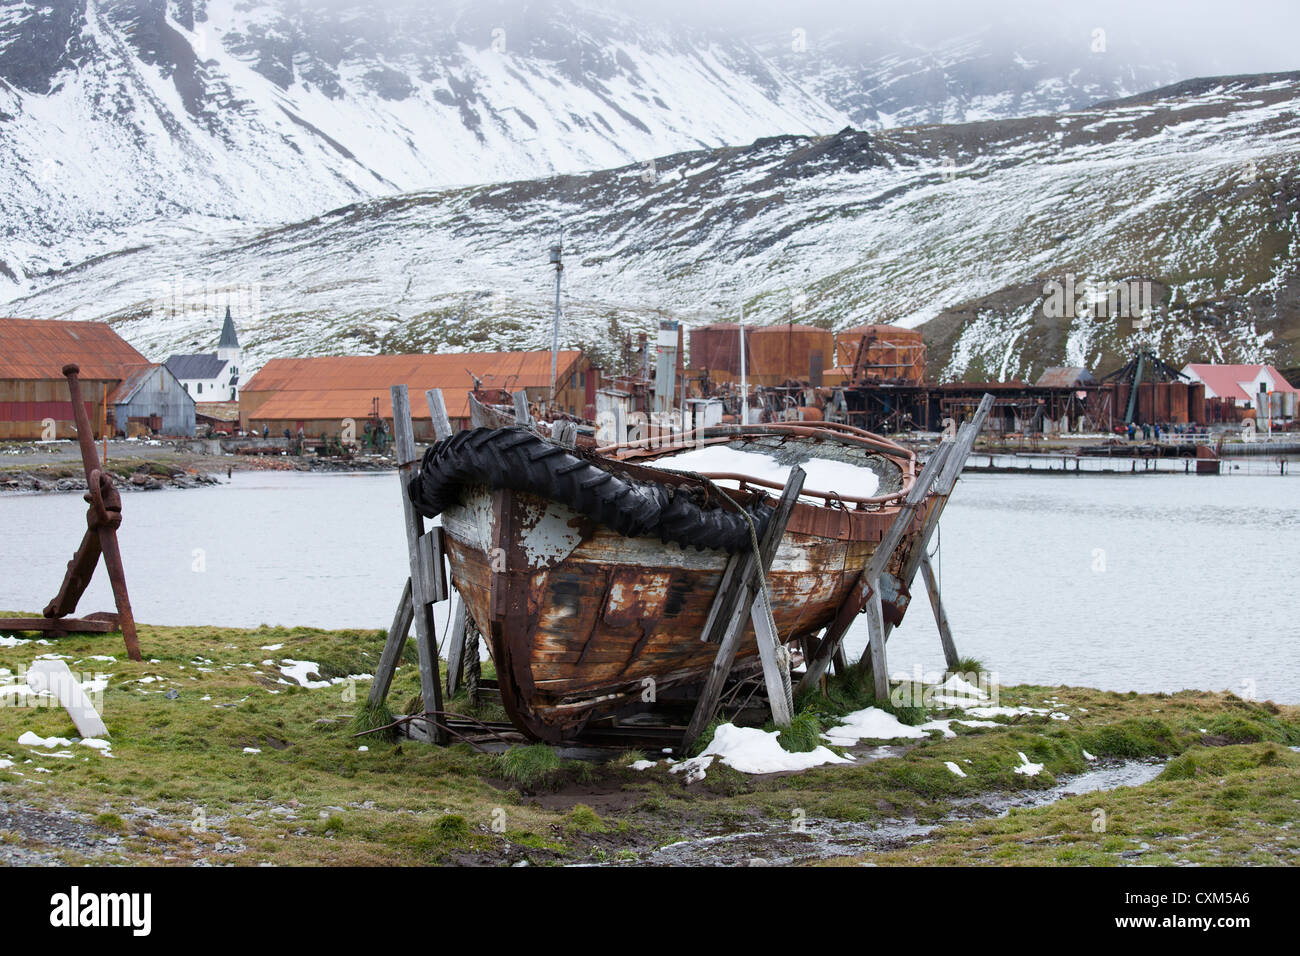 Derelict whaling boat at Grytviken, South Georgia Island. - Stock Image